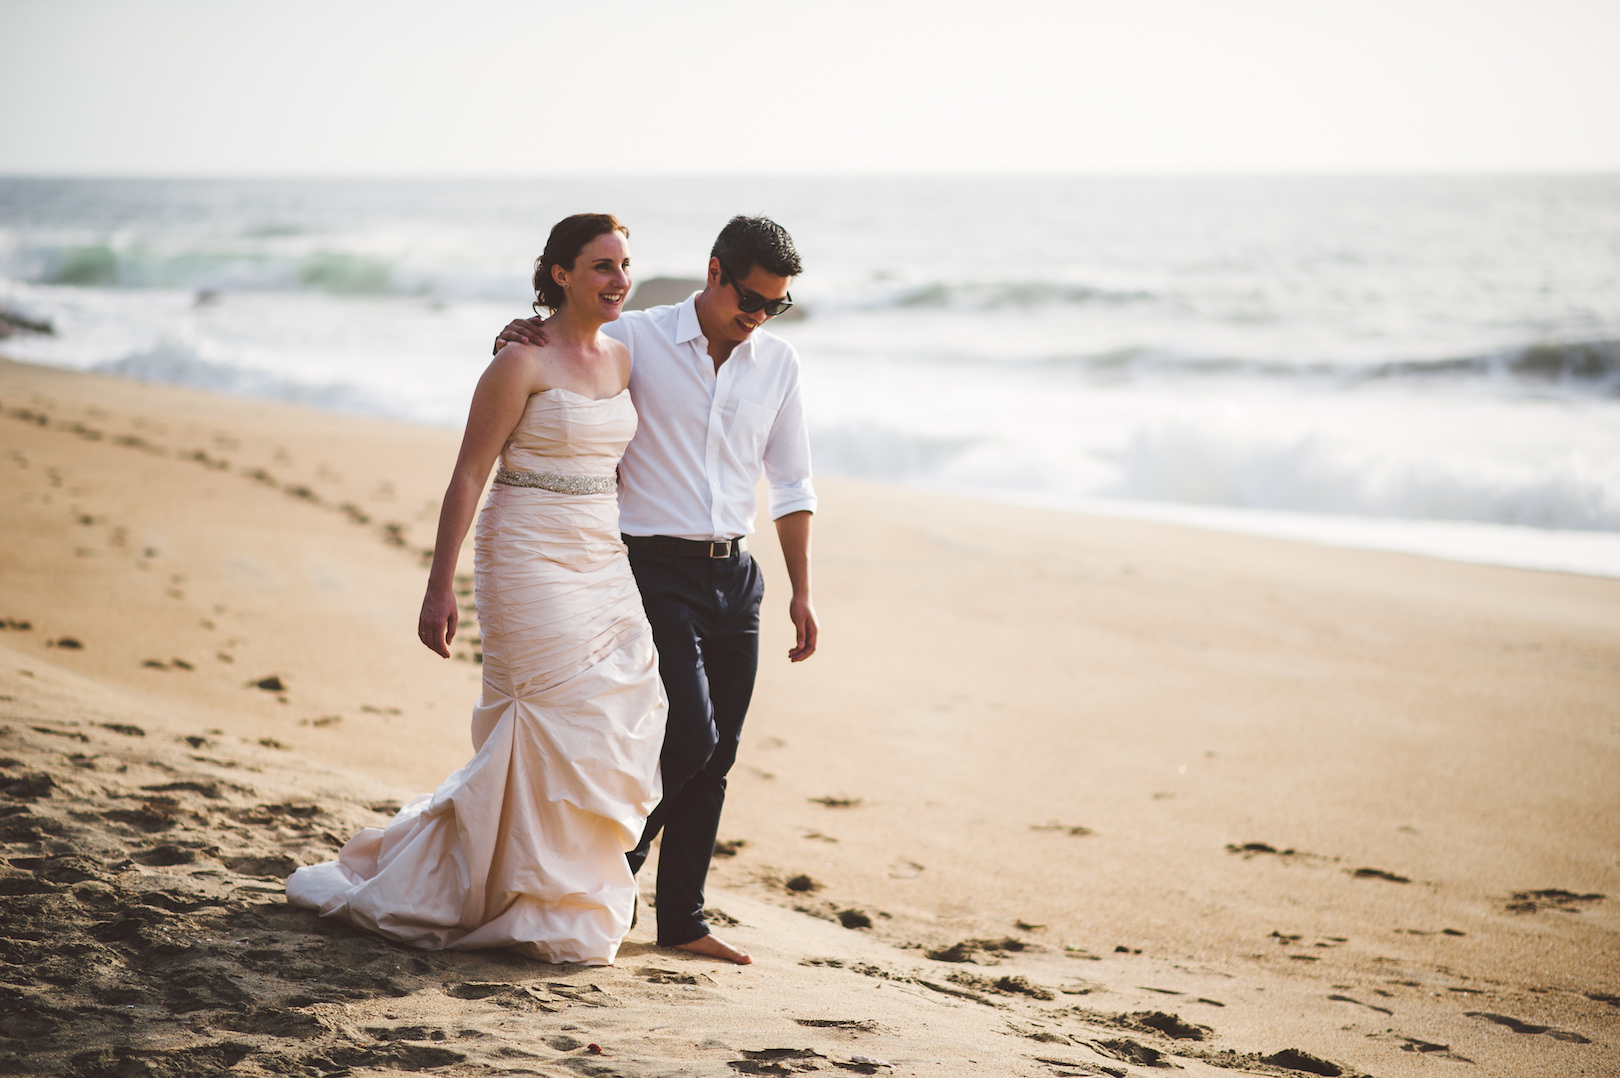 Steve & Mika - Sayulita - © Dallas Kolotylo Photography - 745